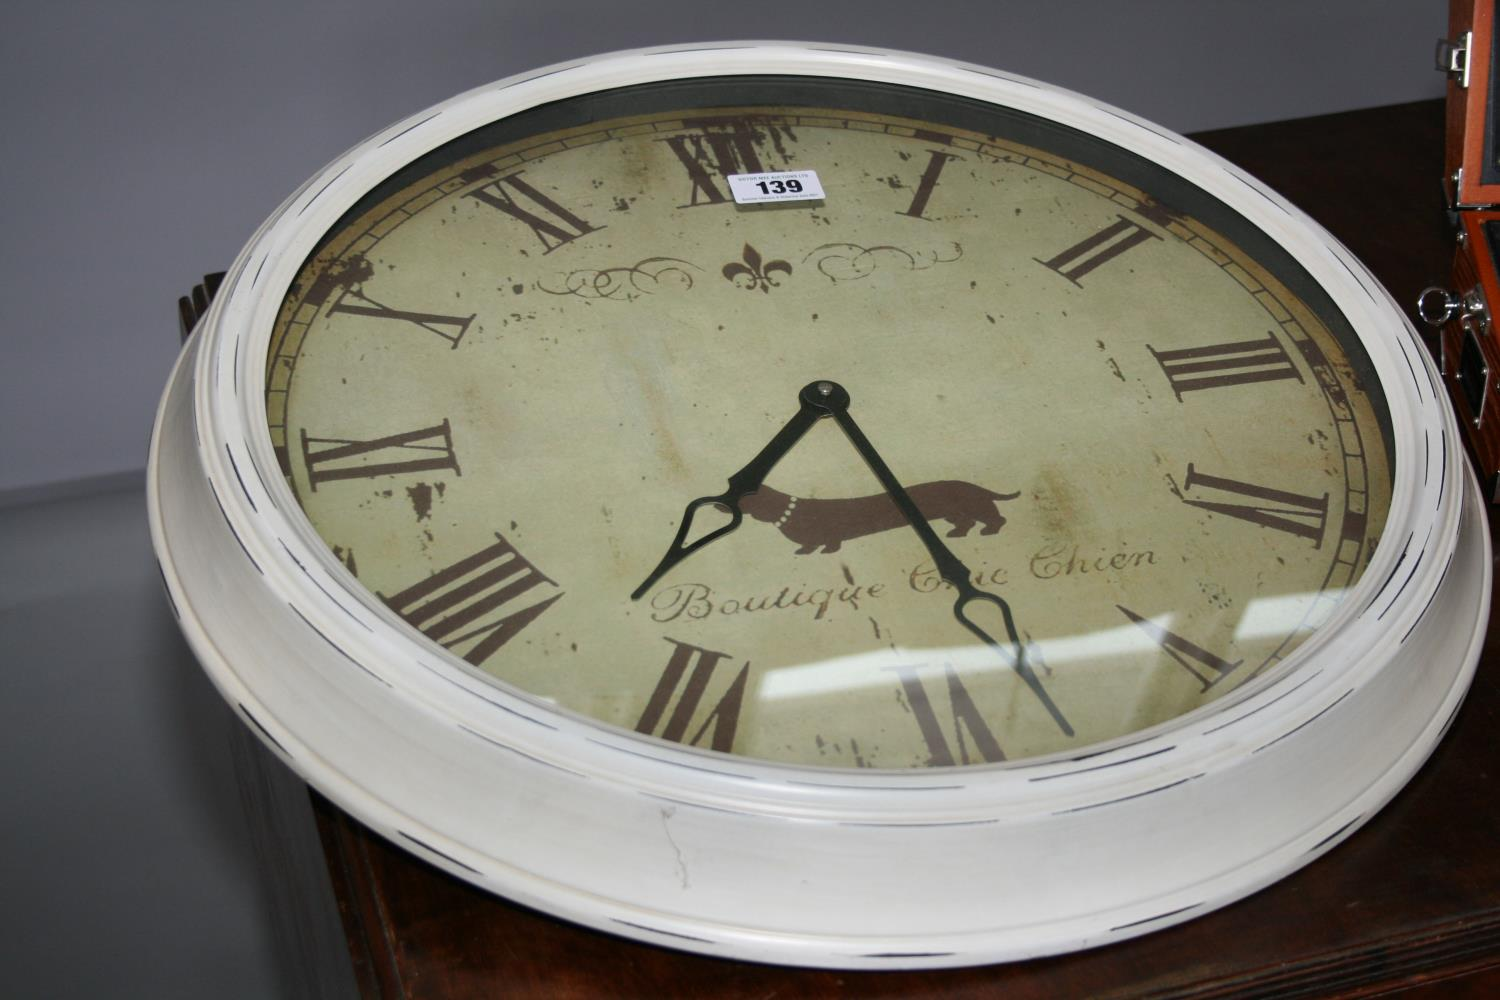 French vintage style wall clock (63W) and vintage design radio alarm clock (26W x 20H x 14D) - Image 3 of 3